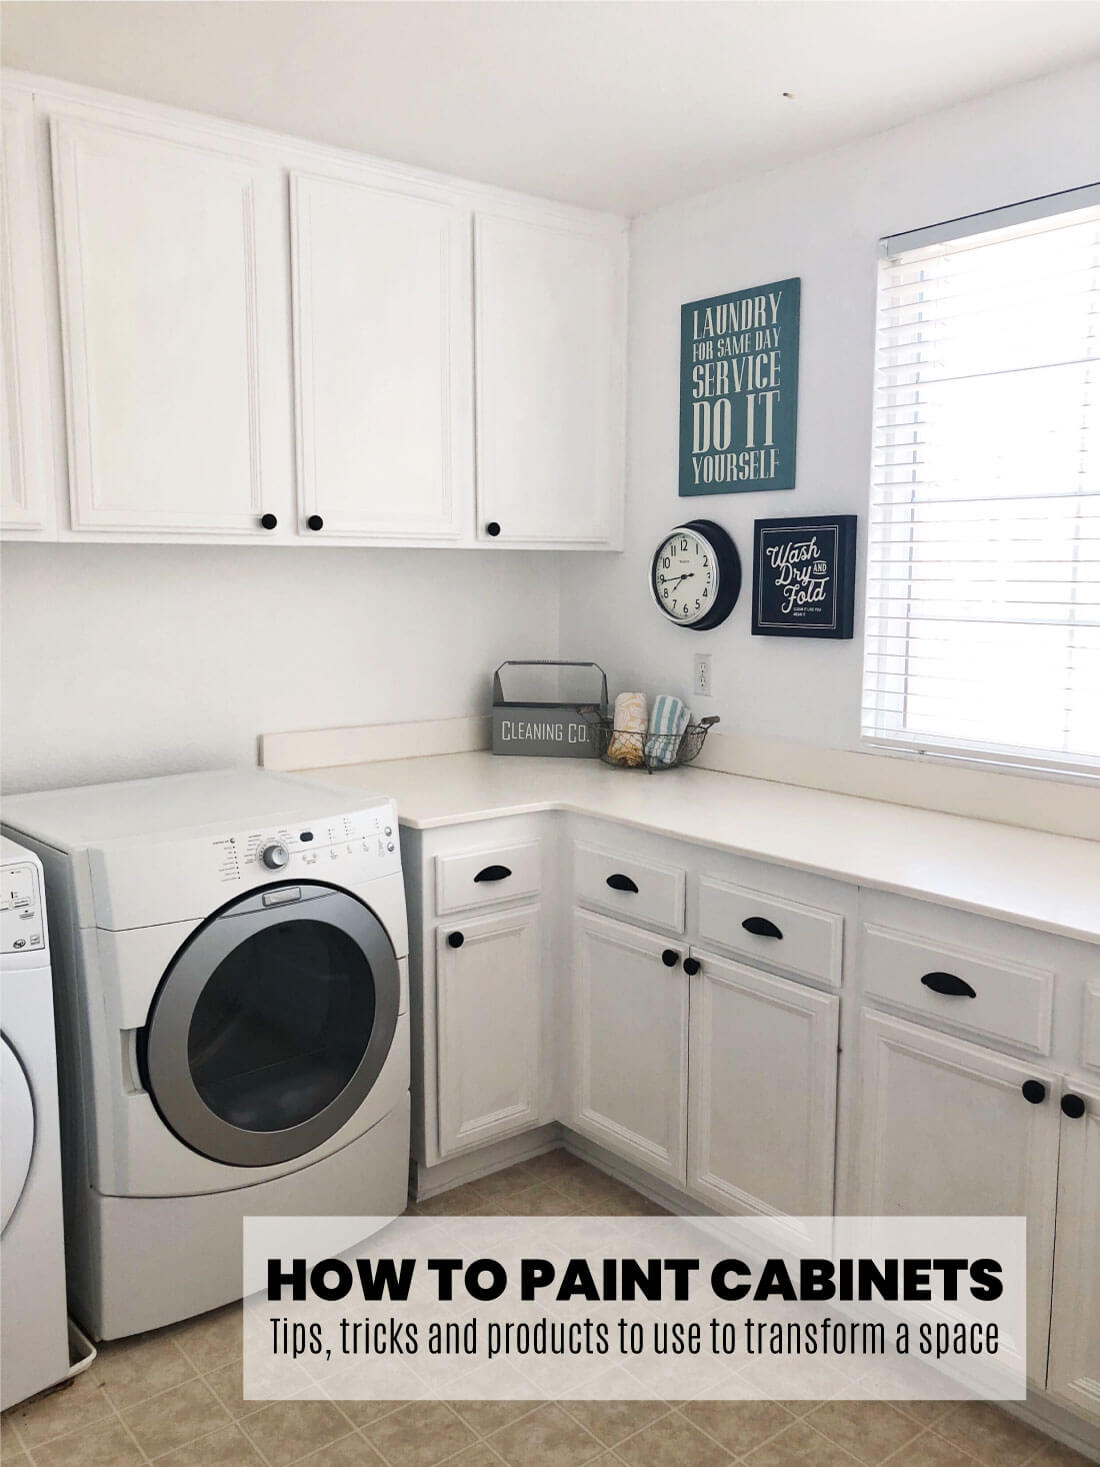 How to Paint Cabinets - the tips, tricks and resources to use to transform your space on the cheap.